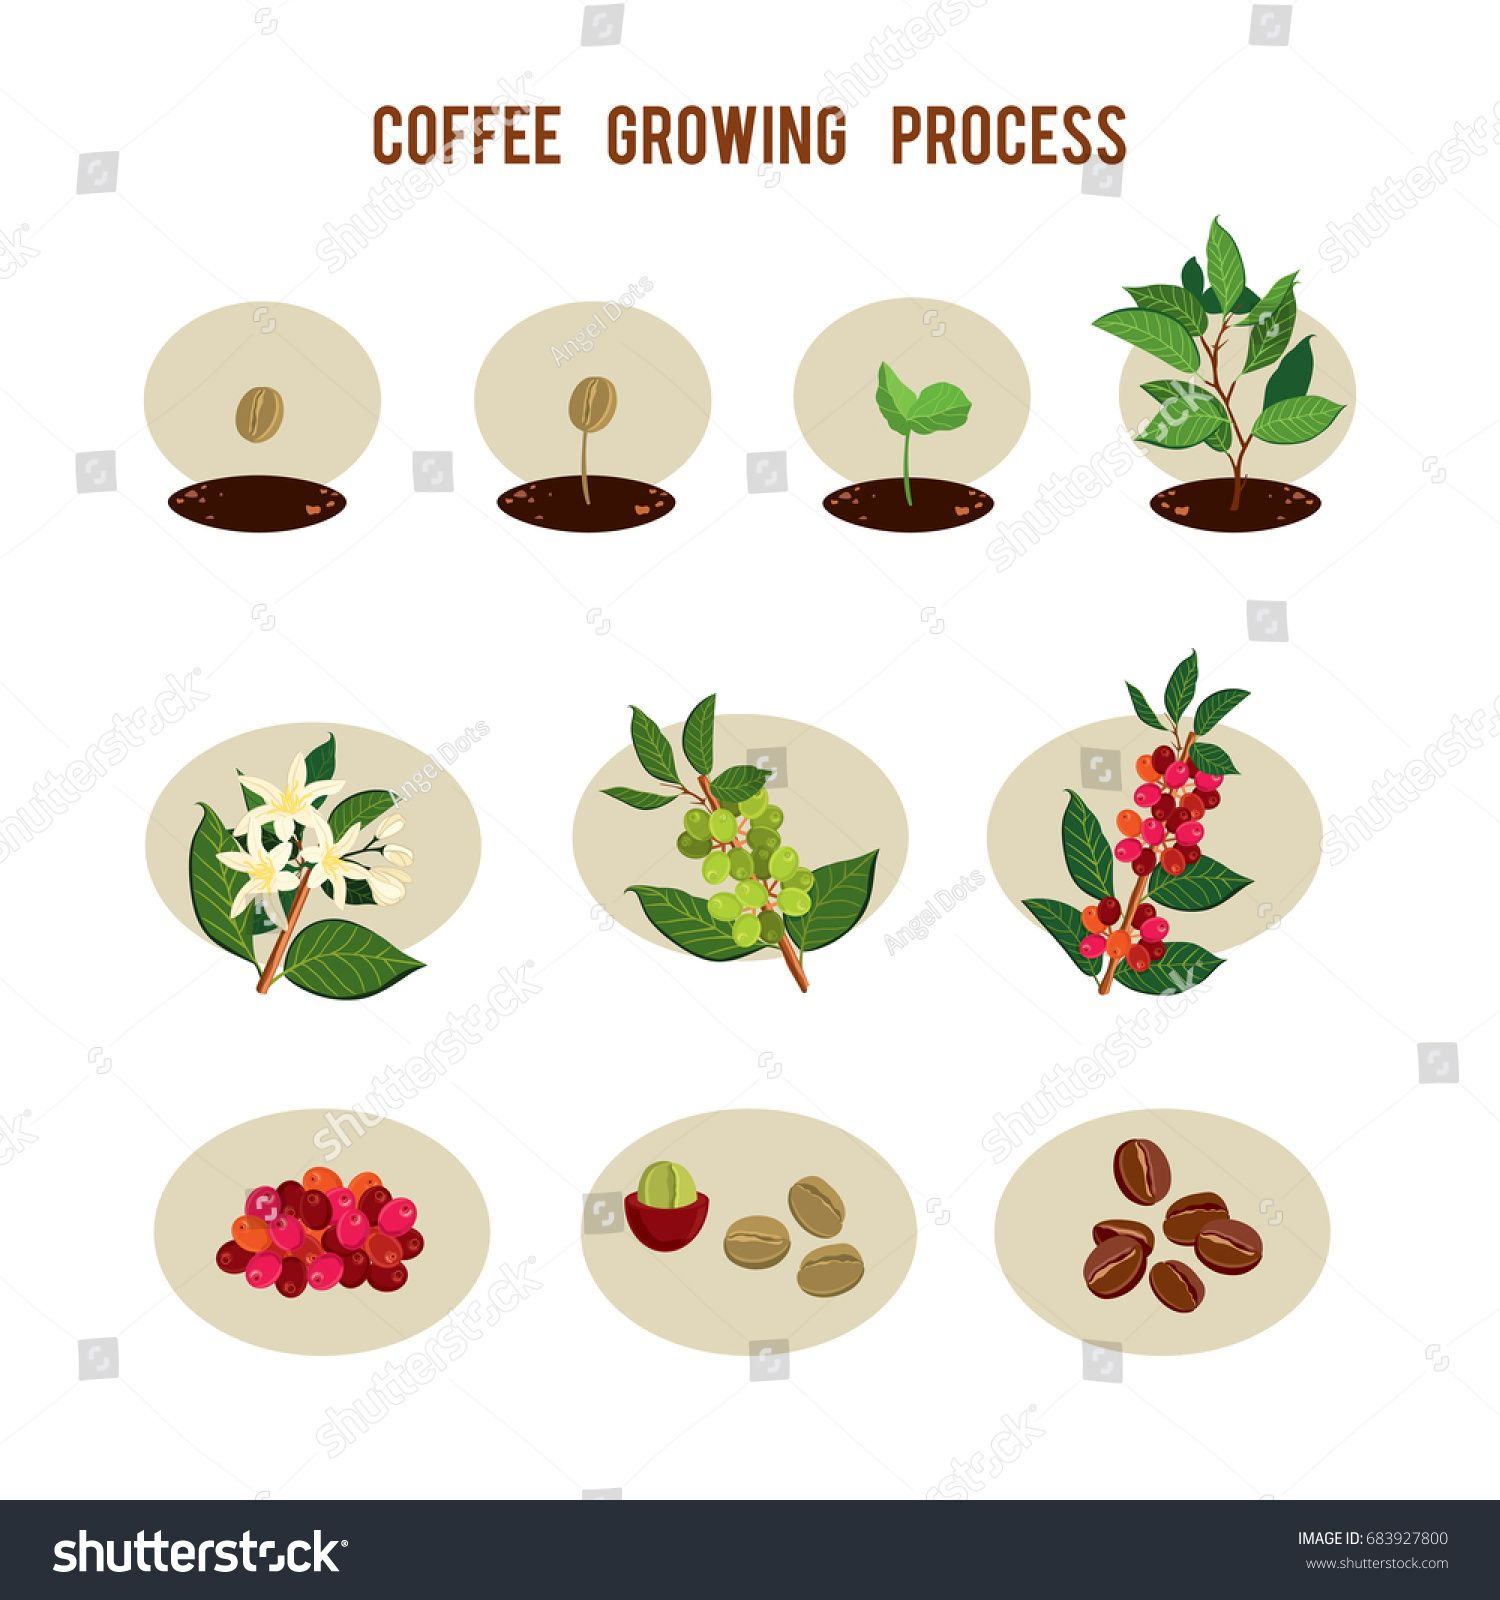 Plant seed germination stages. Process of planting and